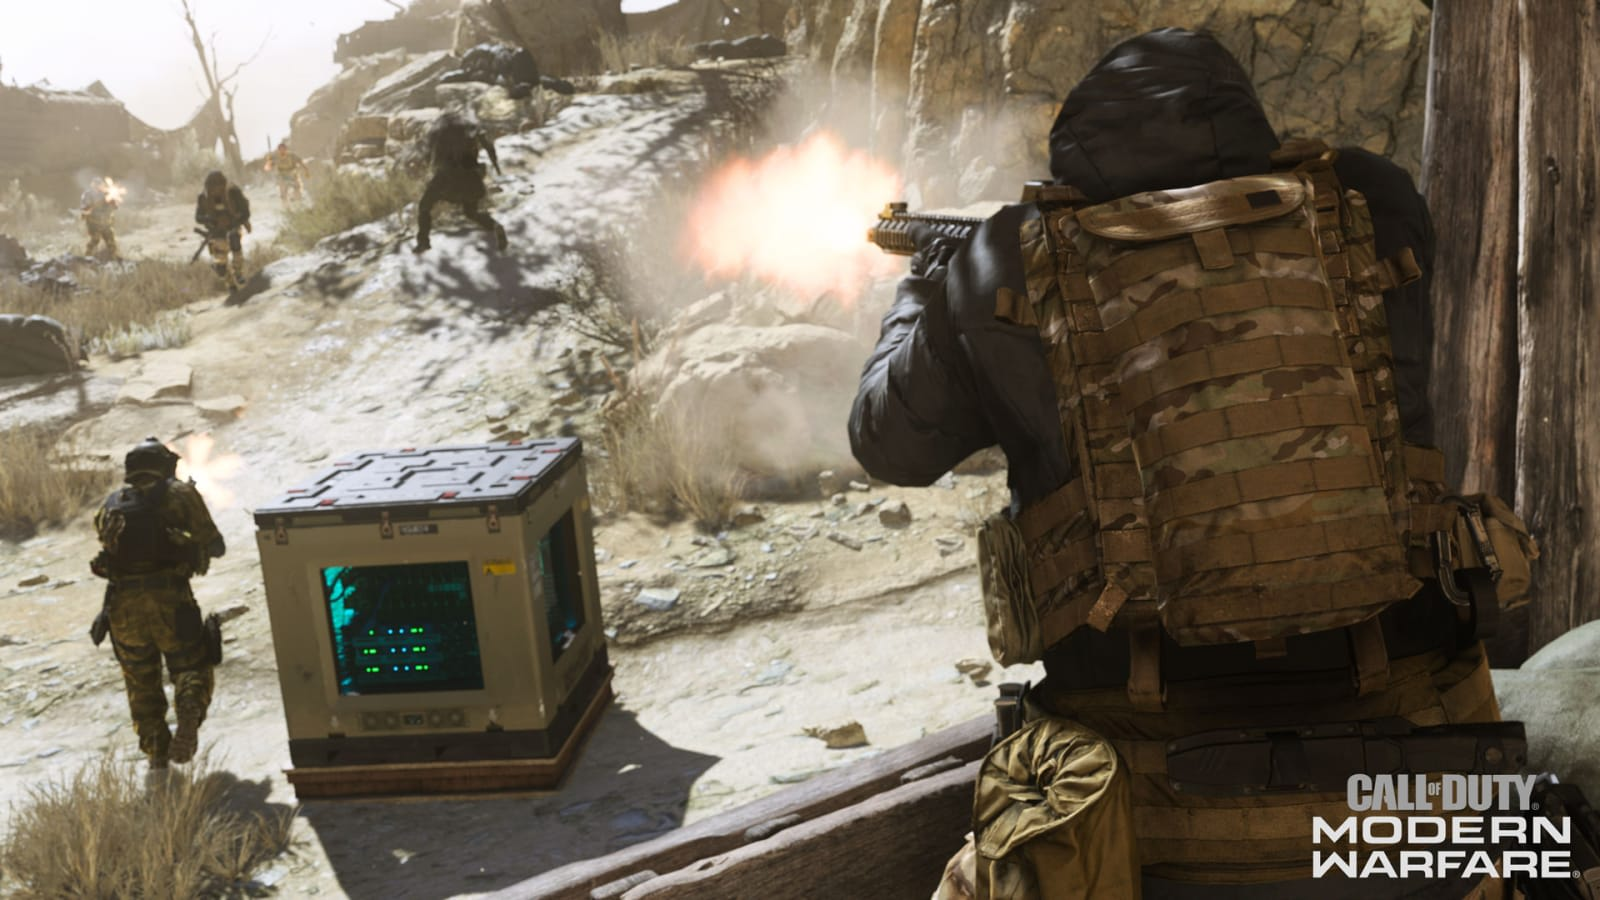 'Call of Duty' crossplay lands on October 25th